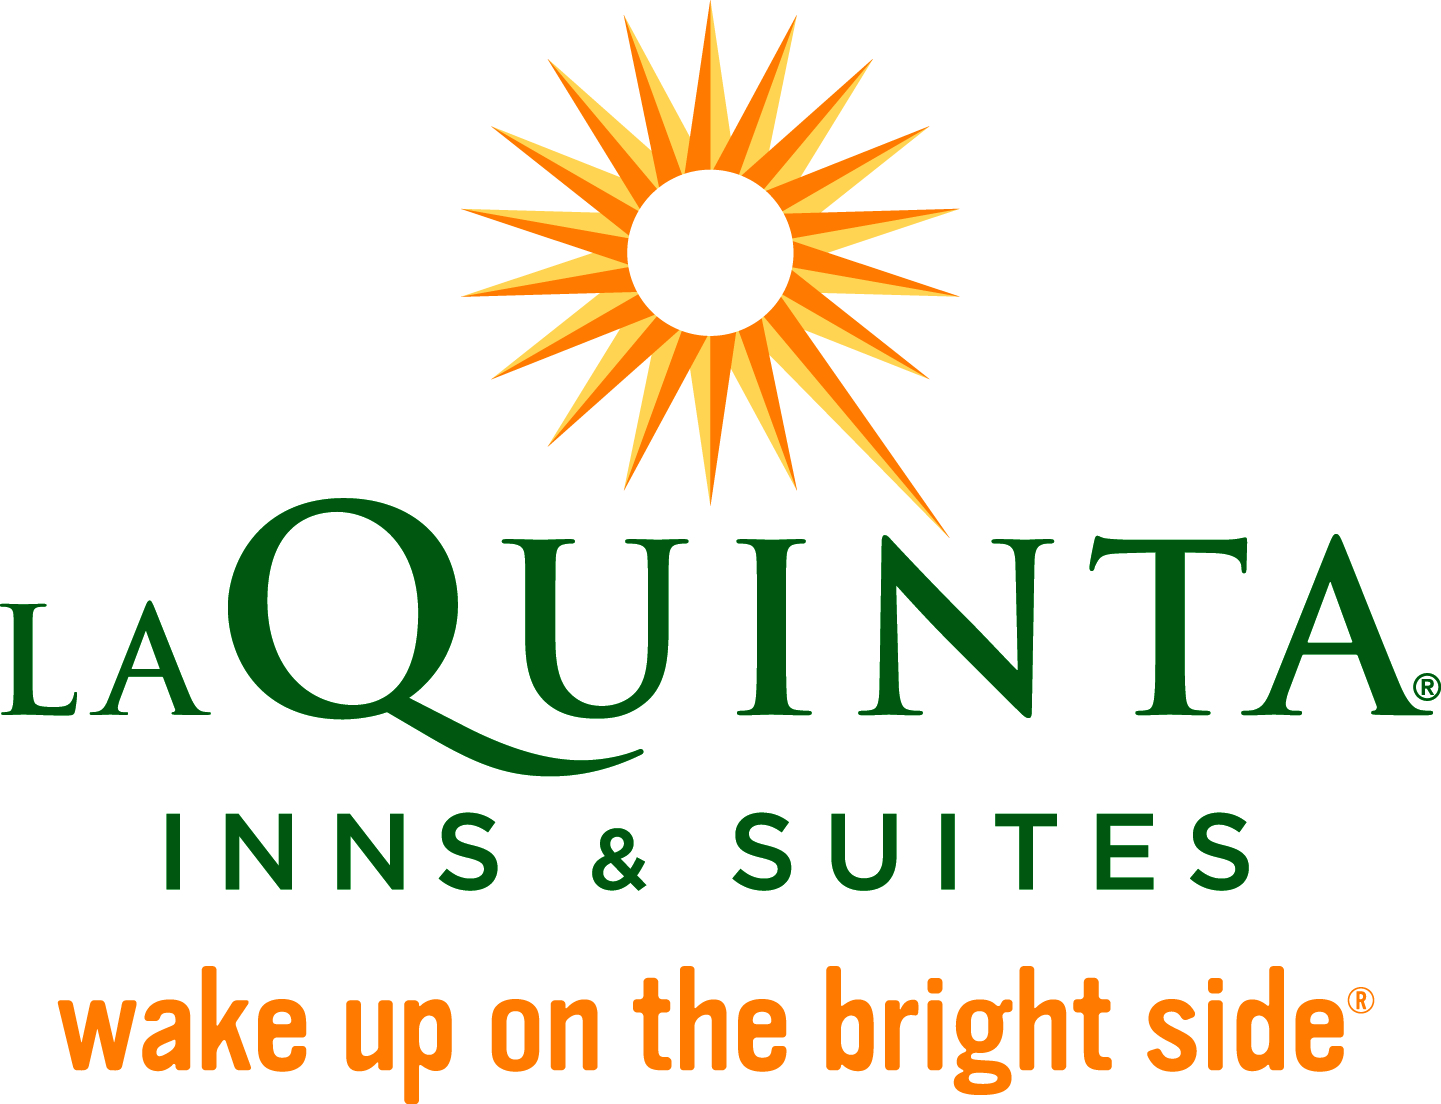 La Quinta Inns and Suites